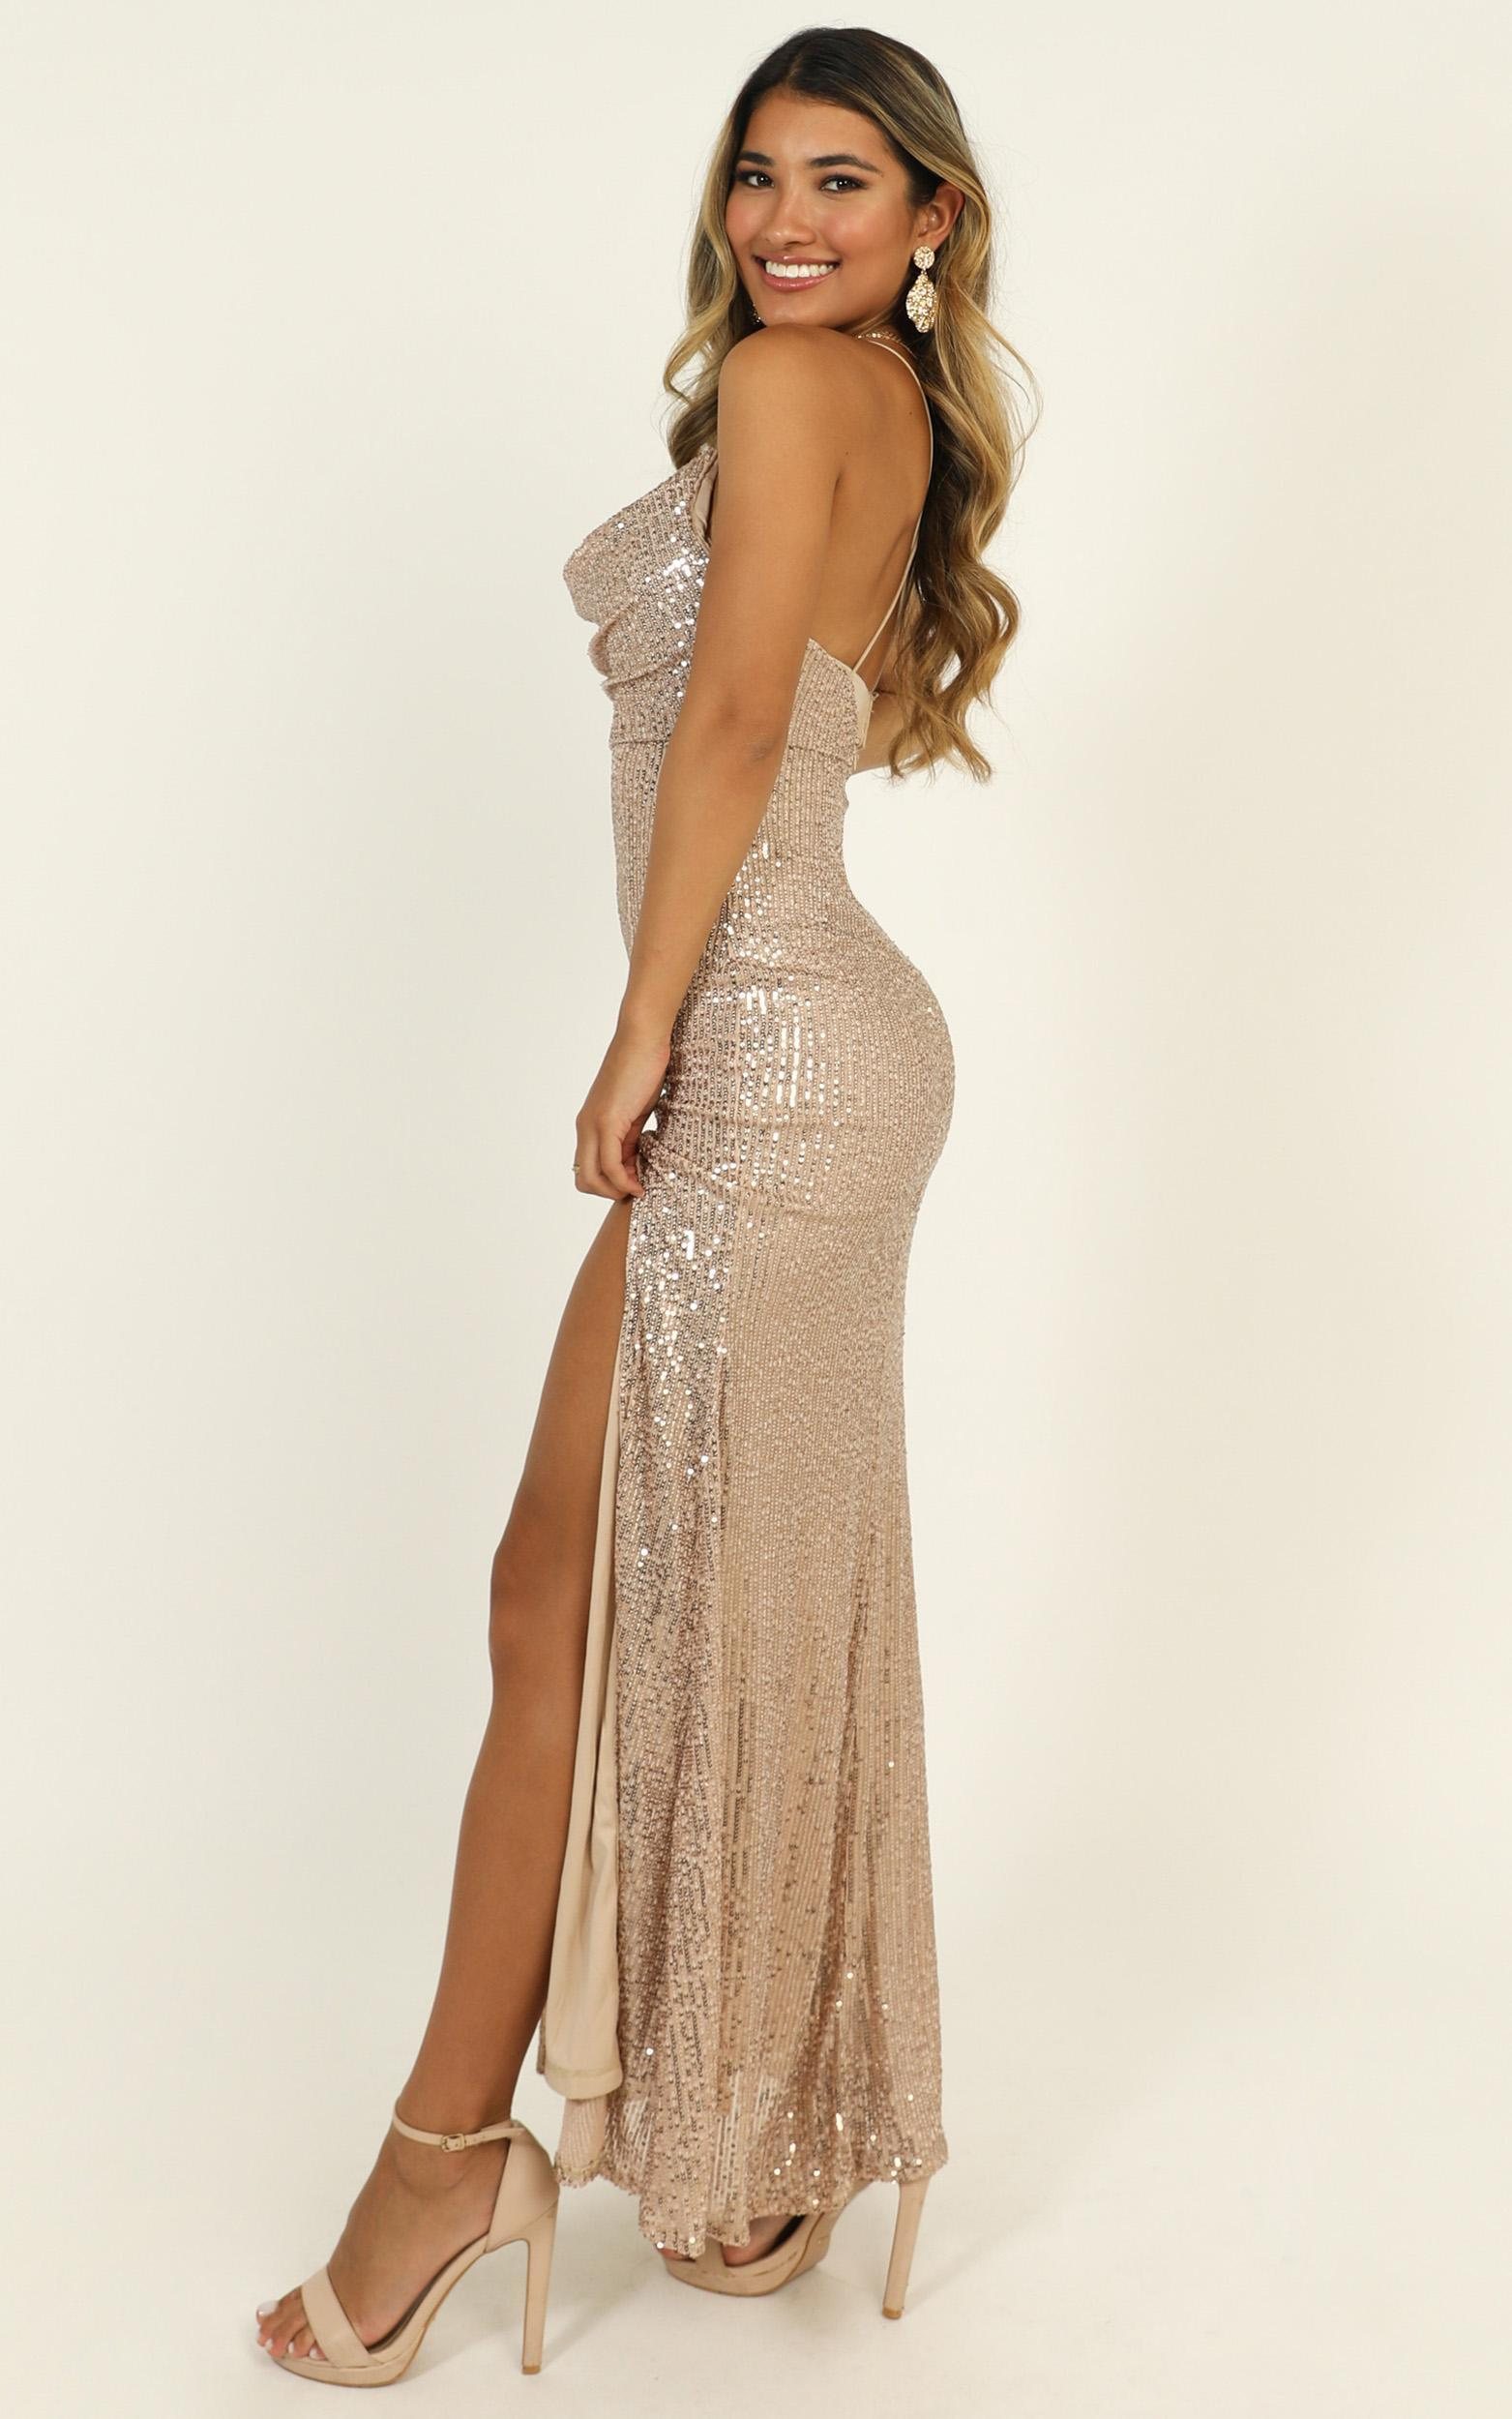 Together With You maxi dress in rose gold sequin - 16 (XXL), Rose Gold, hi-res image number null